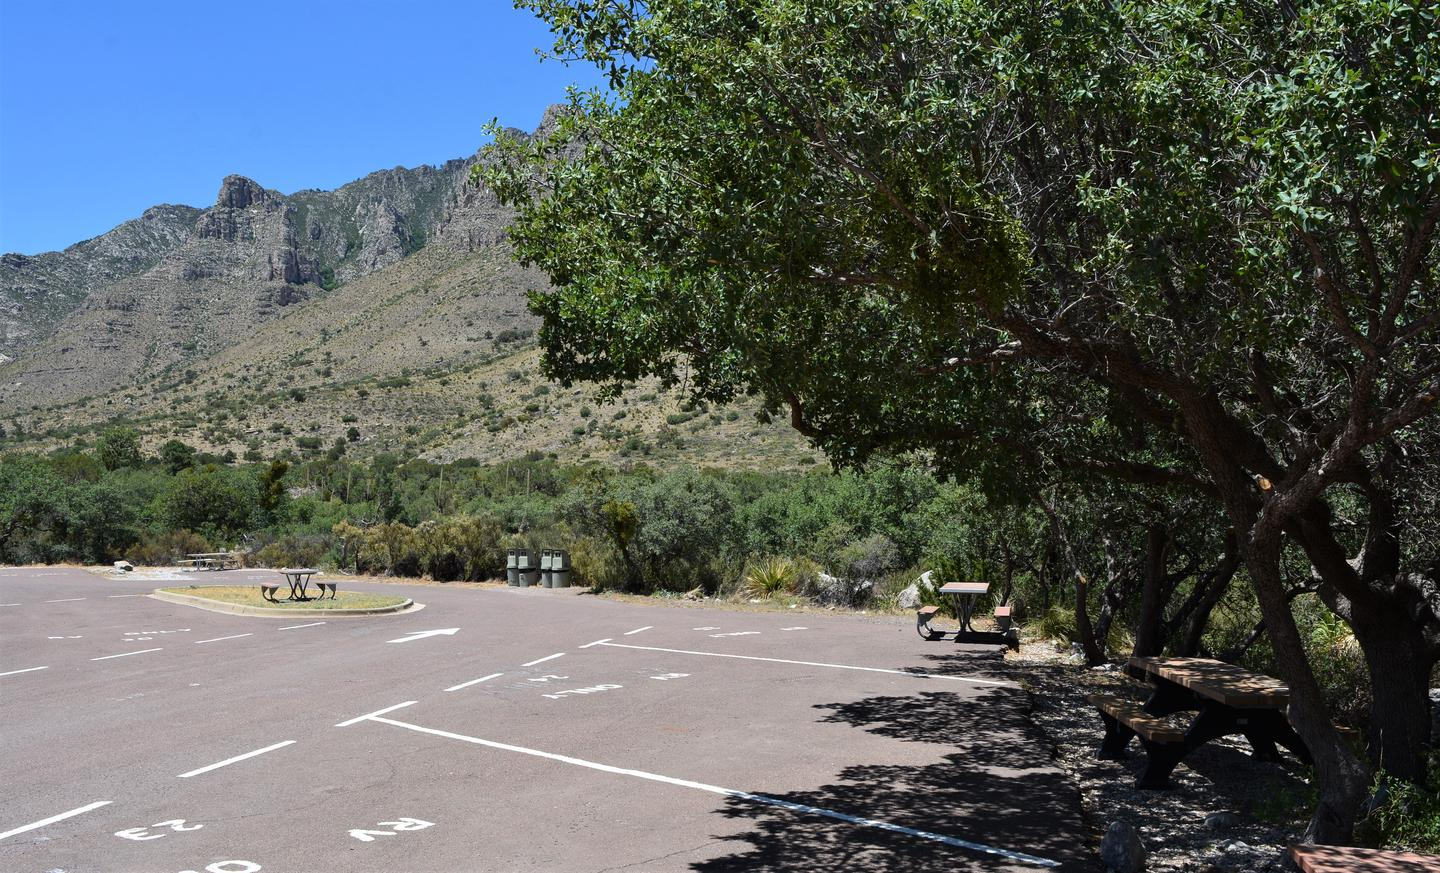 RV campsite 24 is shown from the south side of the site.  This view show the low hanging tree branches that will not accommodate vehicles over 8'.RV campsite 24 shown with low hanging tree branches.  Motorhomes/trailers or other vehicles that need more than 8' in height should not select this site.